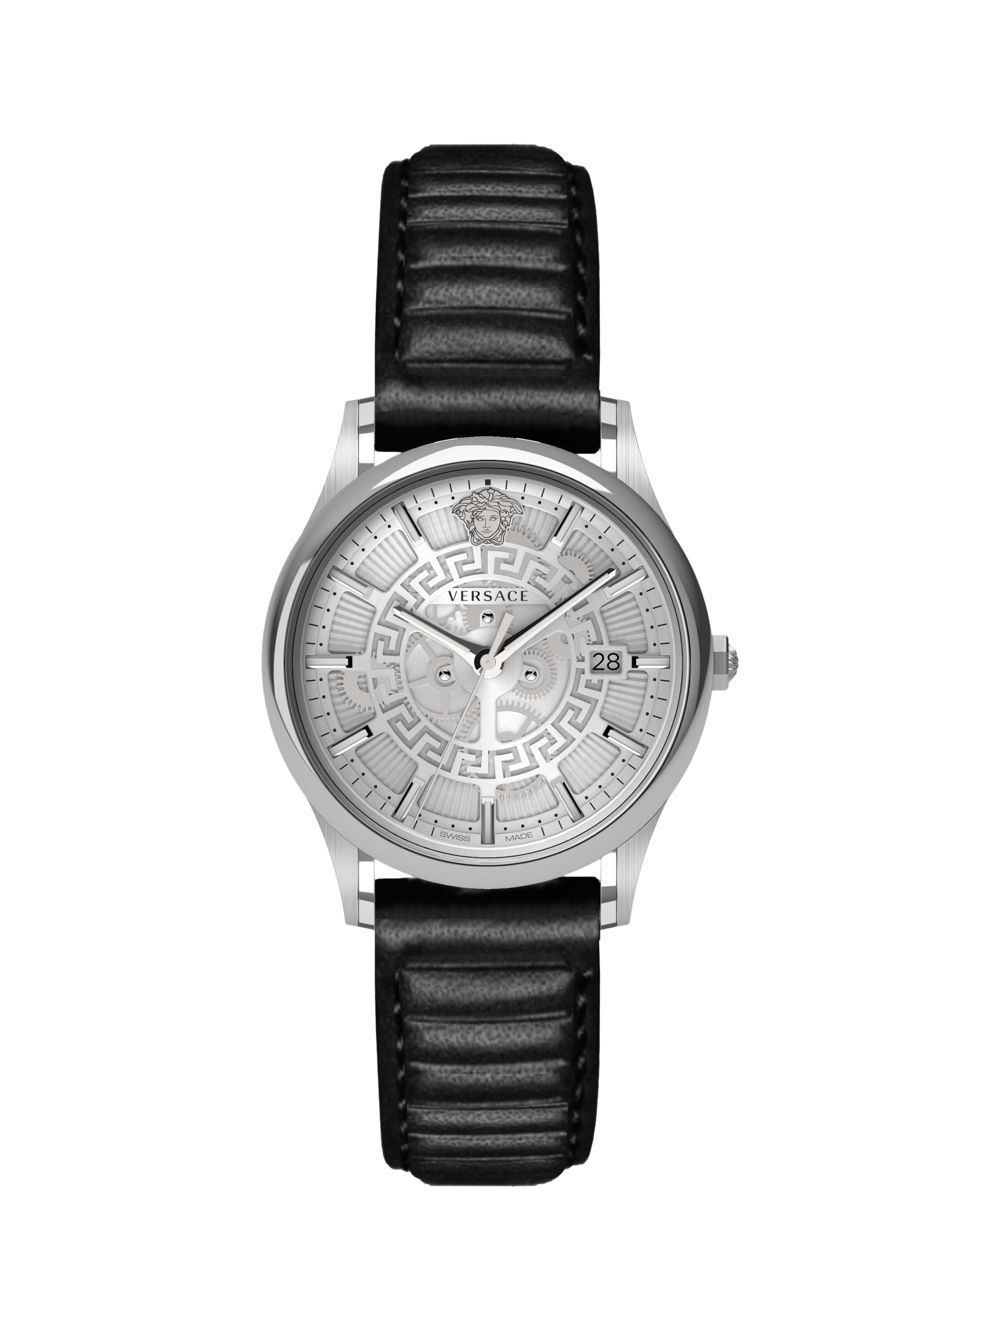 Stainless Steel Analog Leather Watch